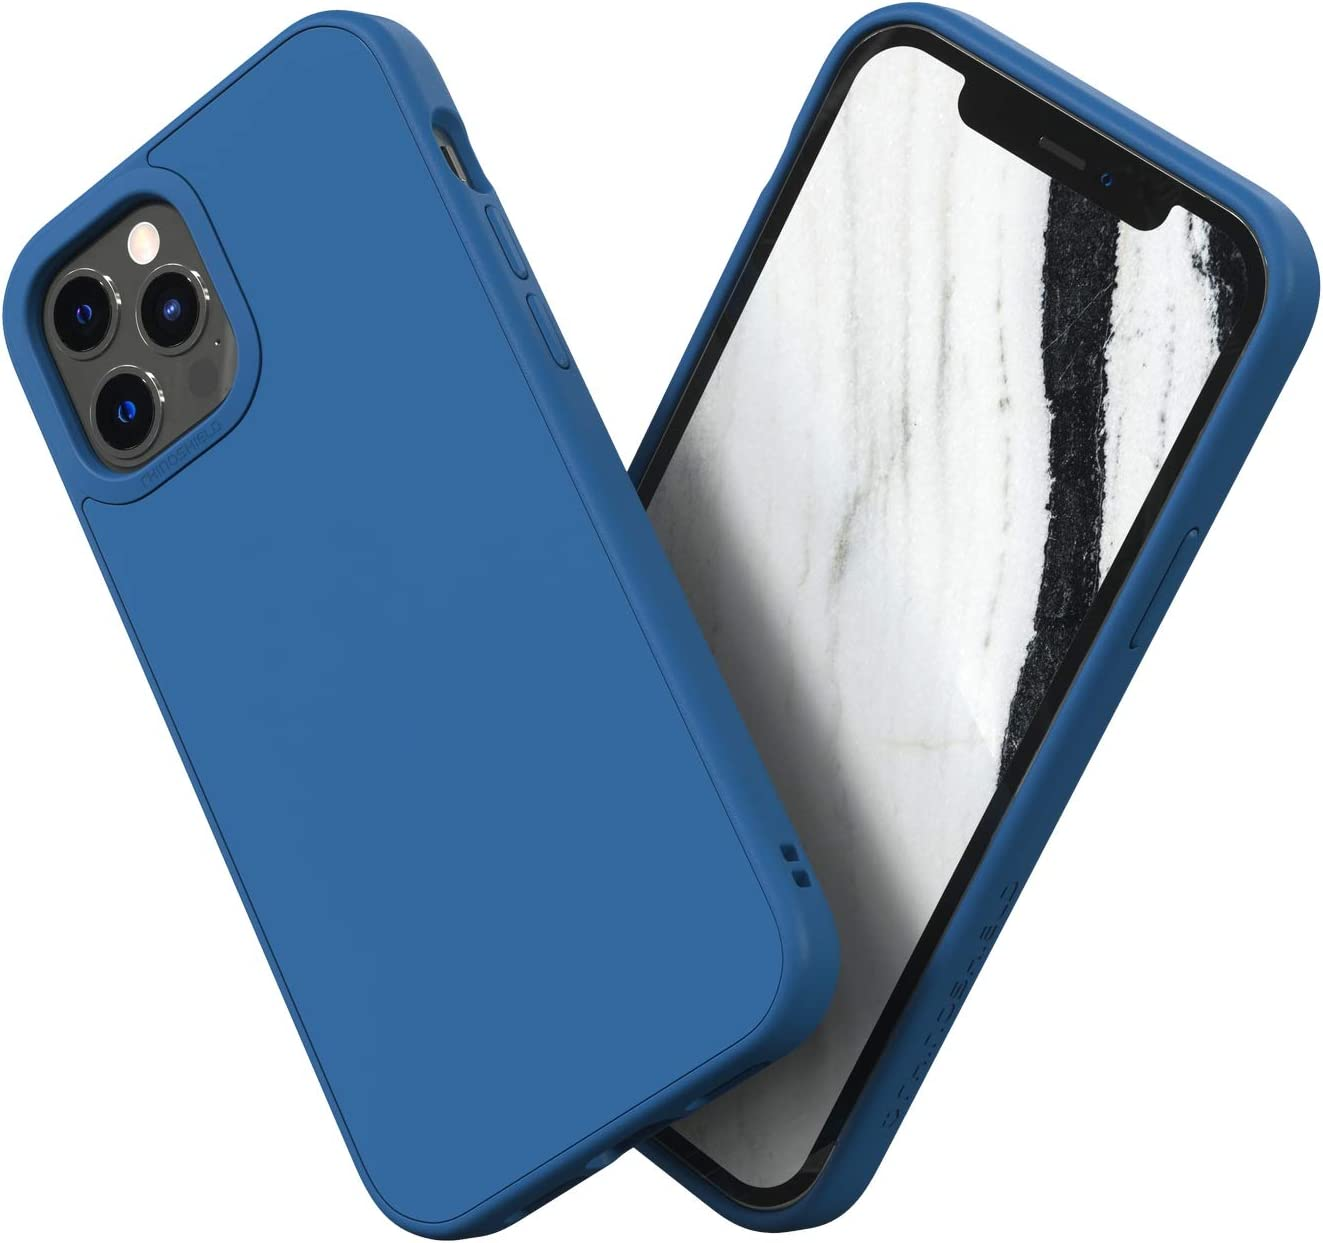 RhinoShield Case Compatible with [iPhone 12/12 Pro] | SolidSuit - Shock Absorbent Slim Design Protective Cover with Premium Matte Finish 3.5M / 11ft Drop Protection - Royal Blue